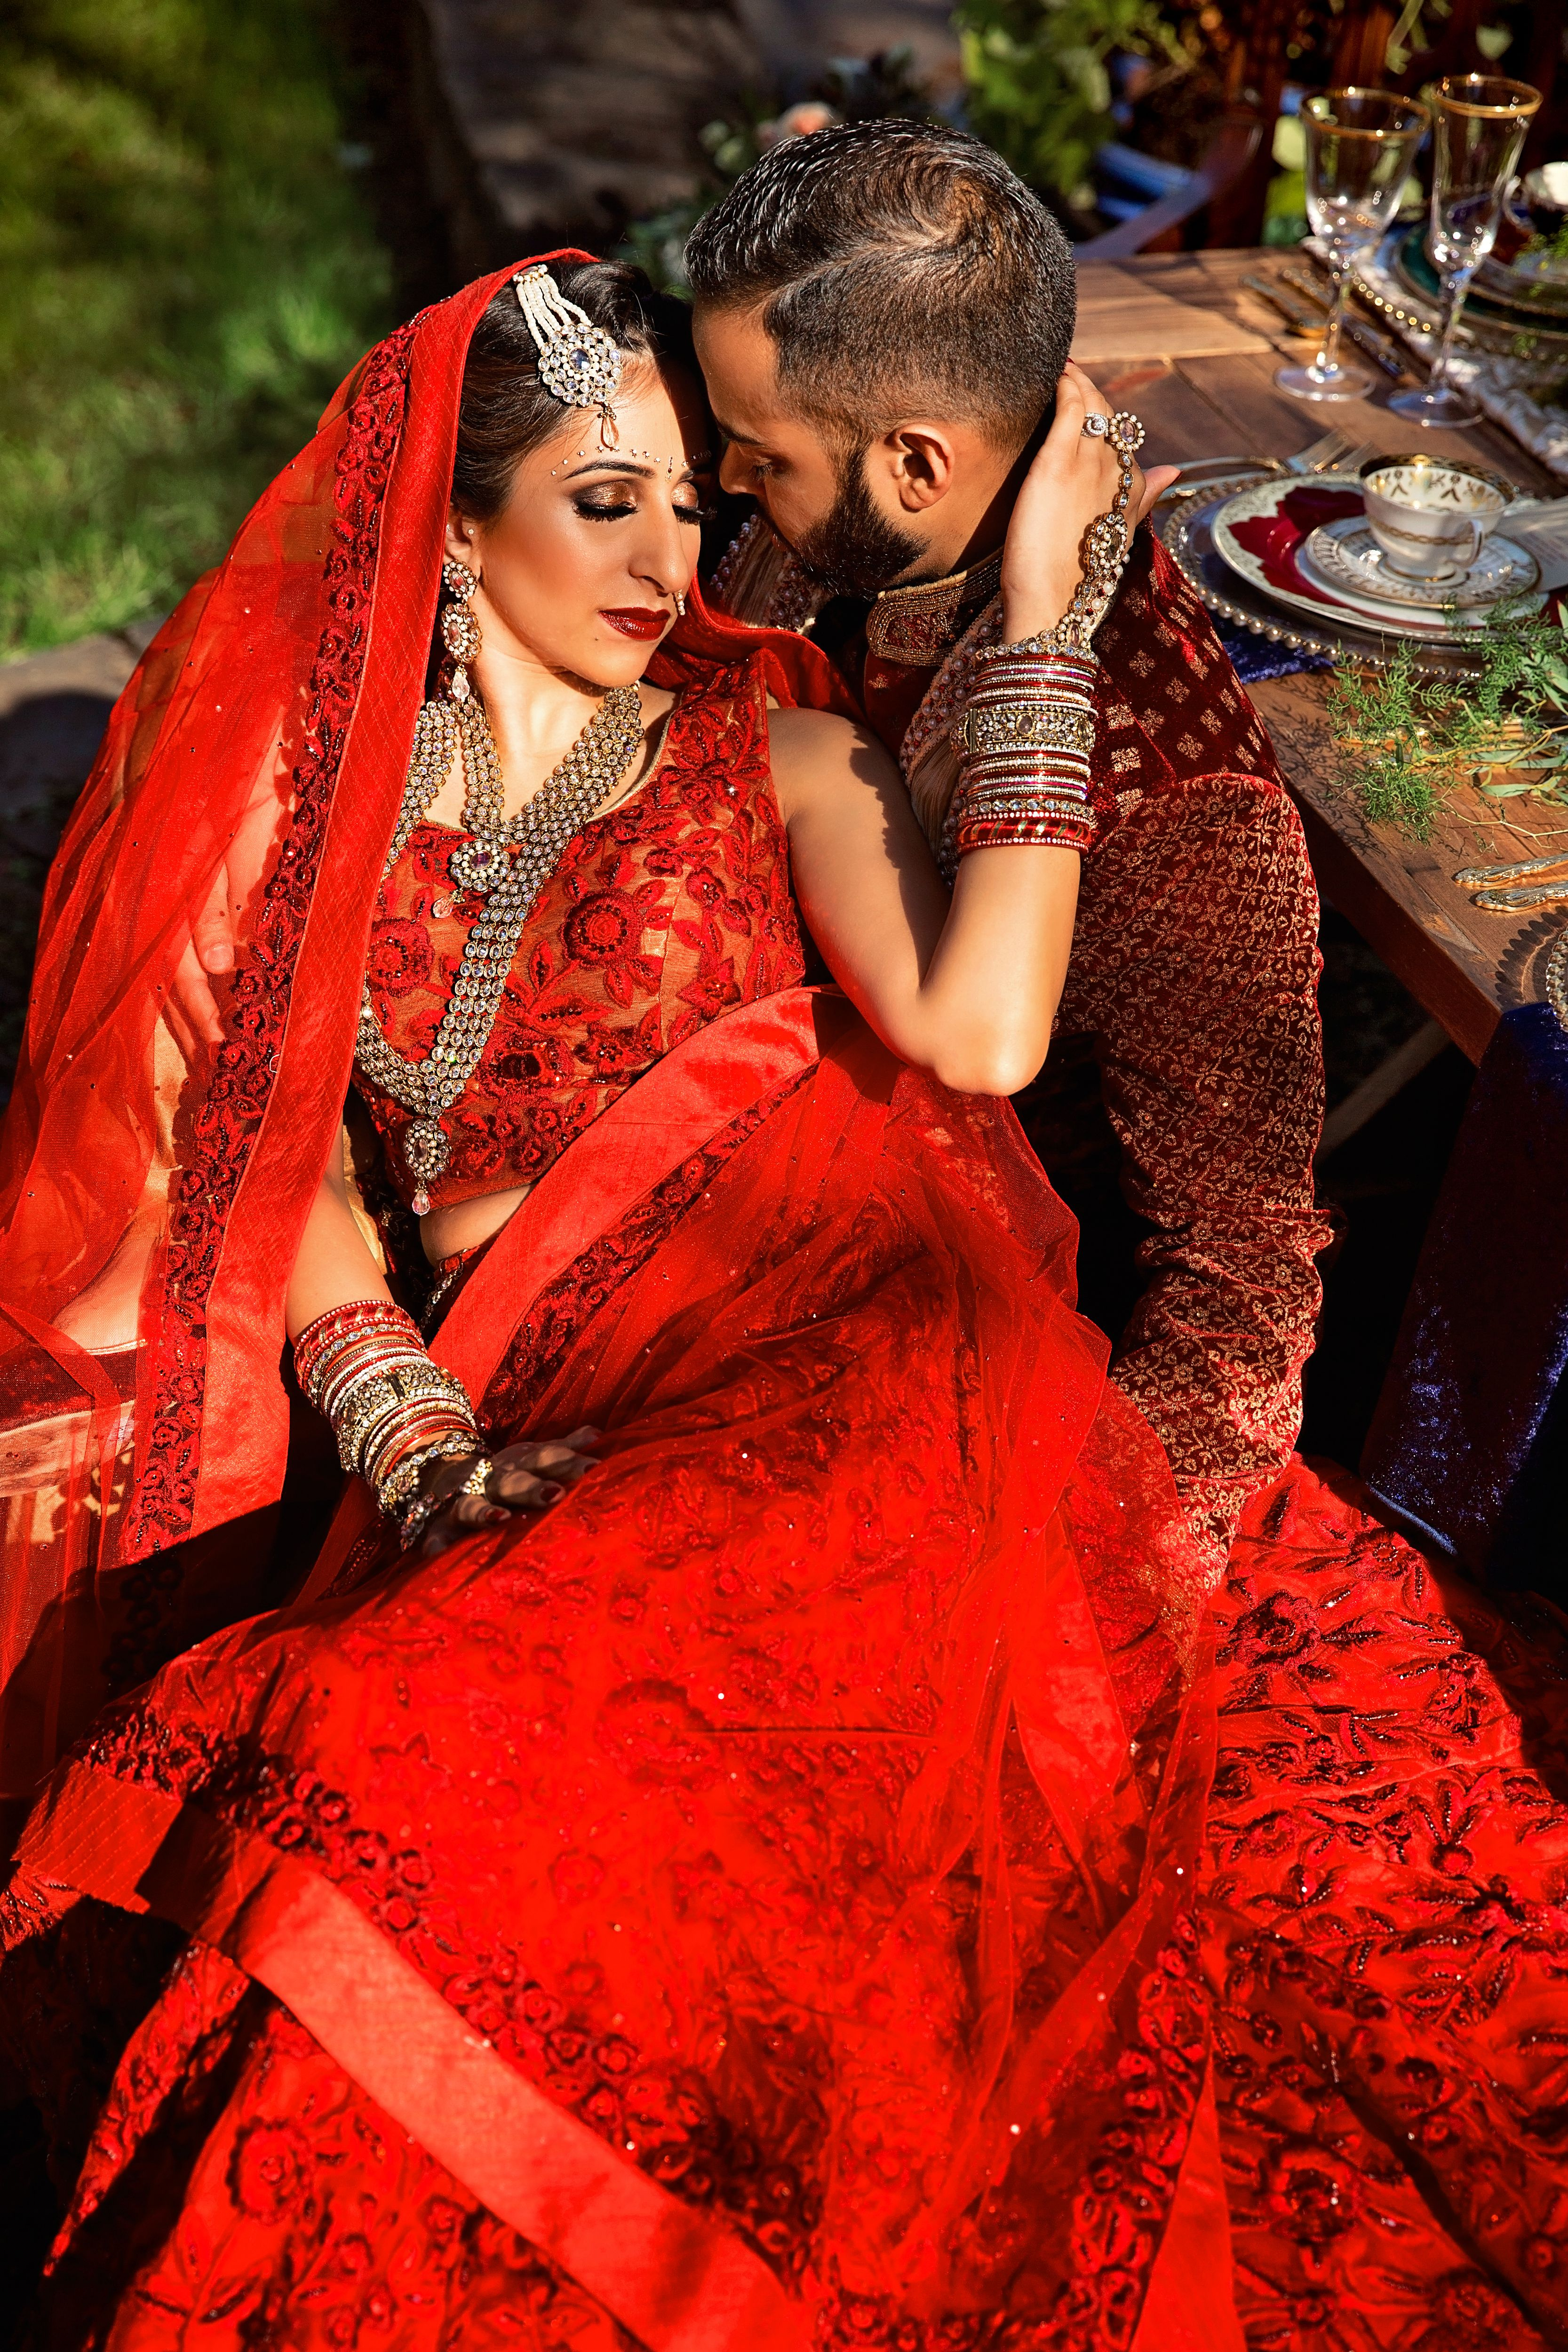 South asian wedding dresses  Check out South Asian Weddings from Gillian Marto Creating Events of